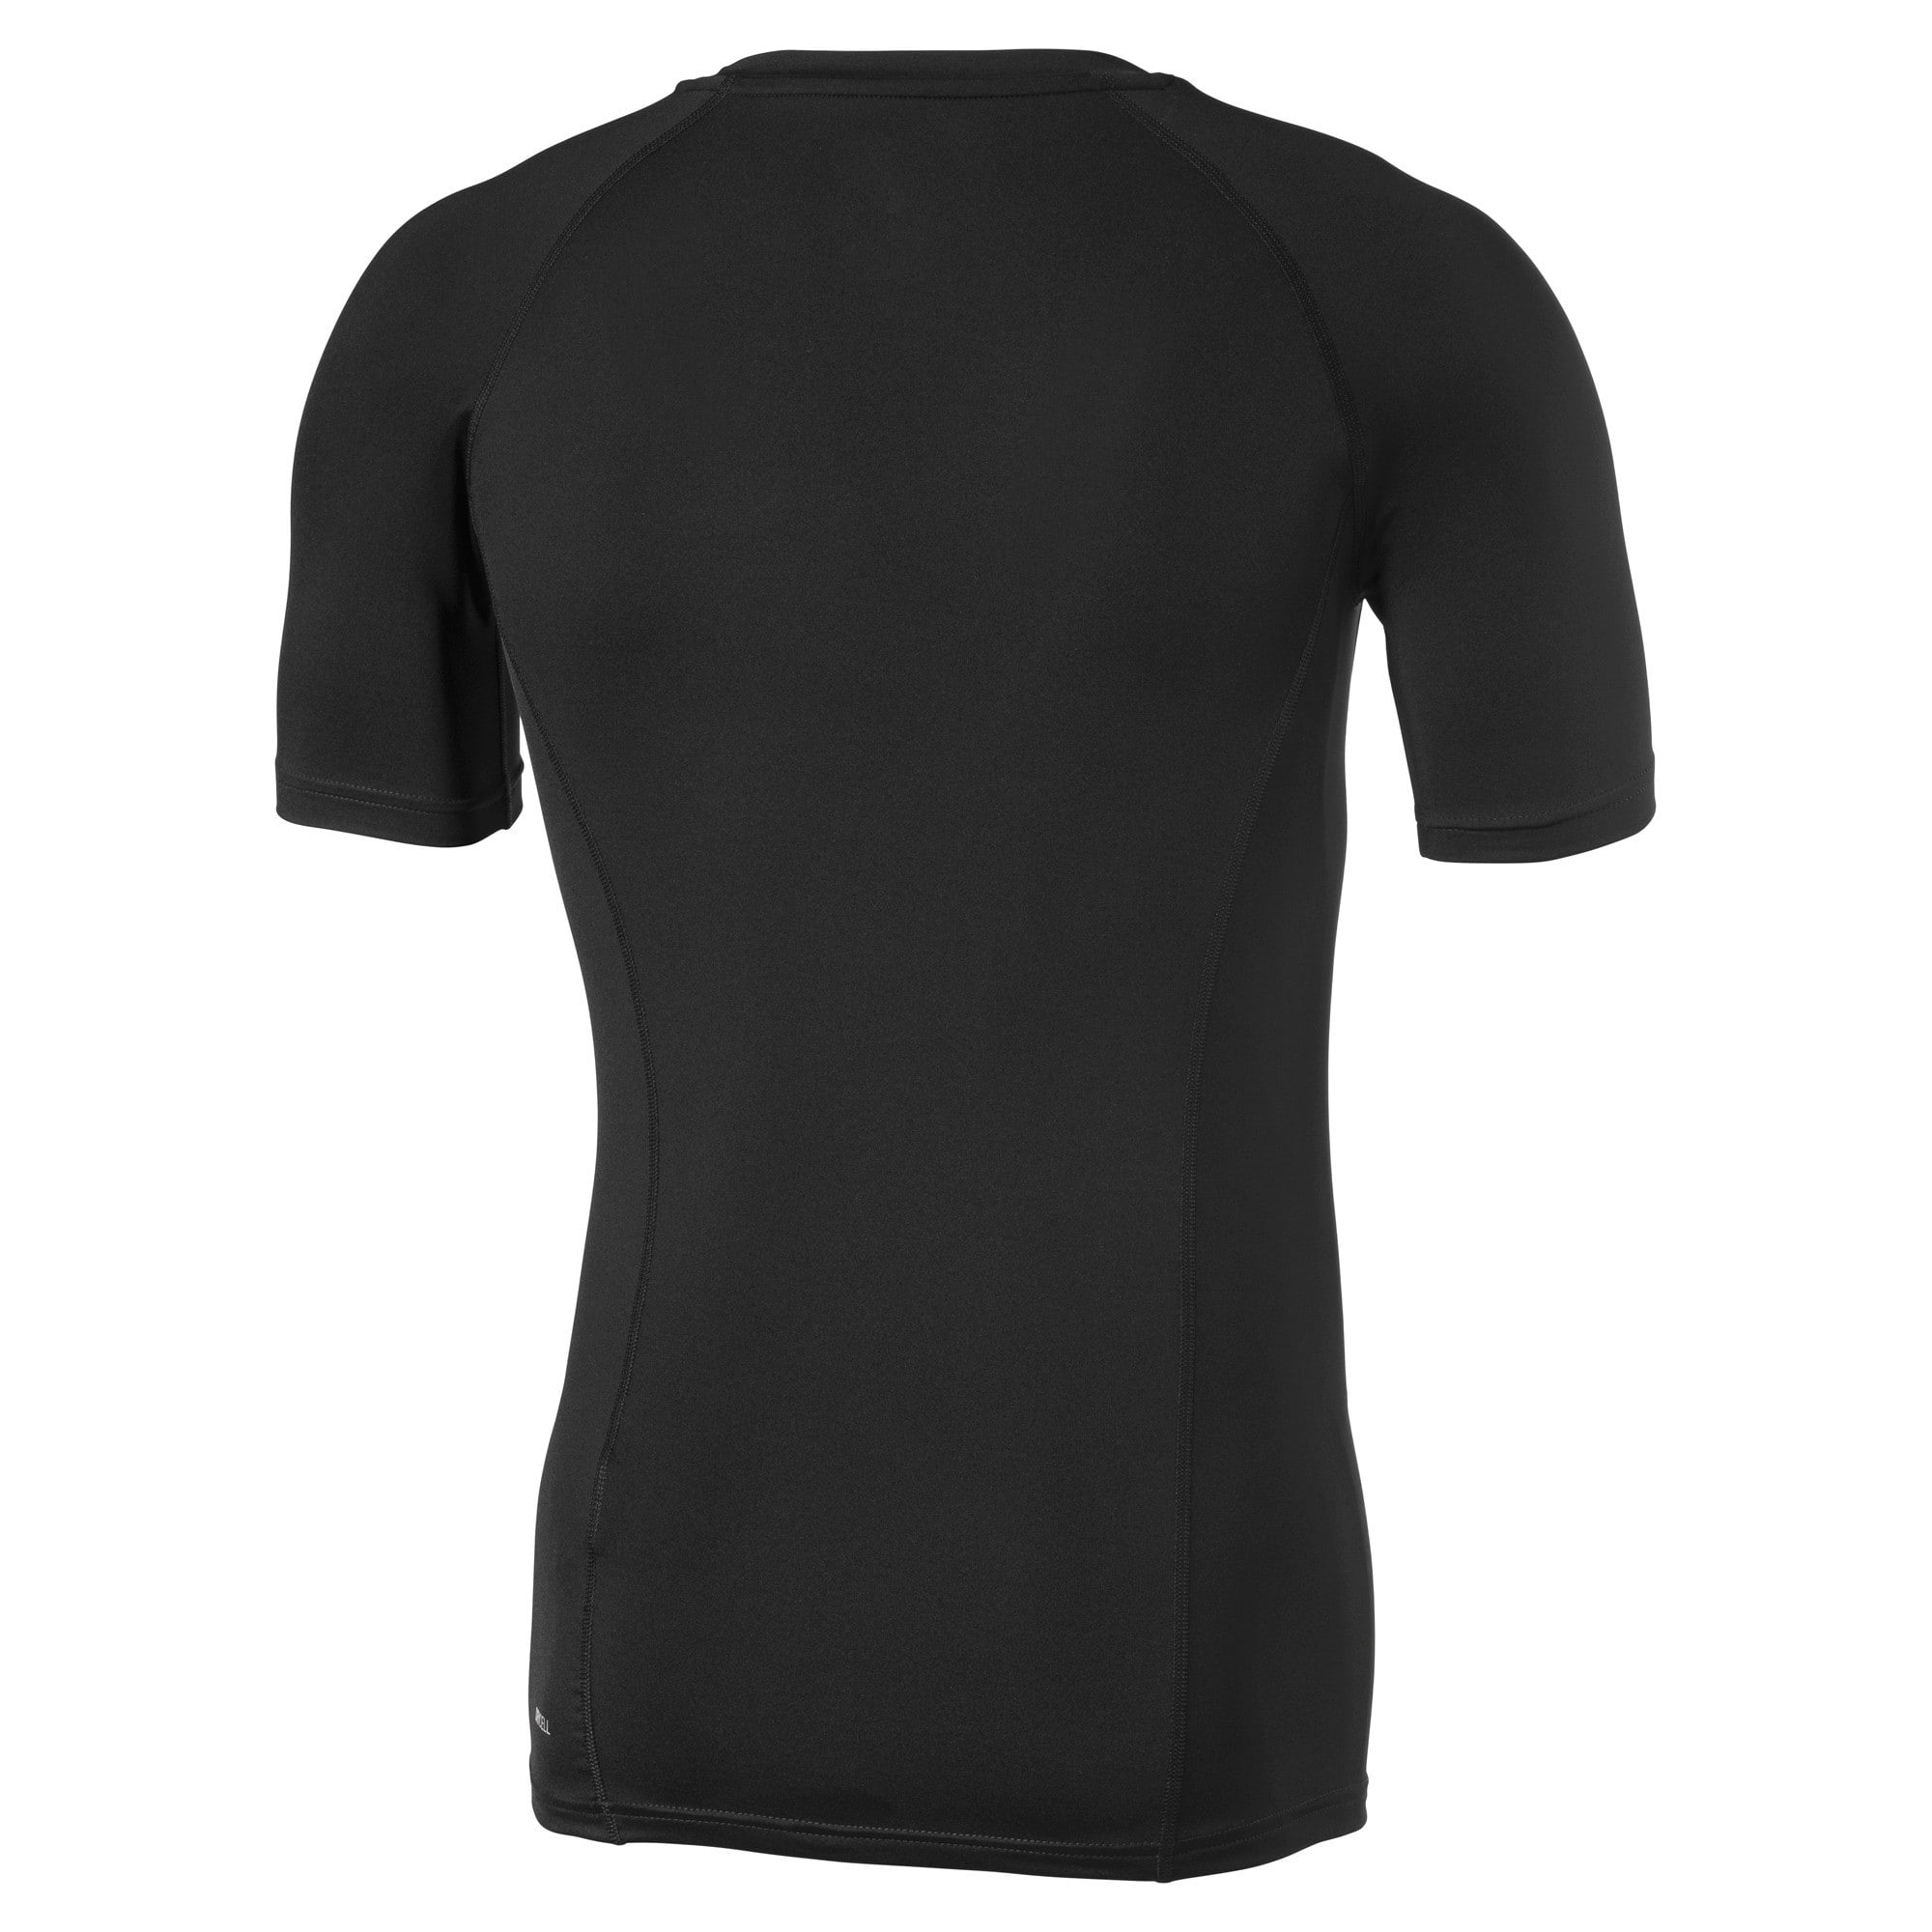 Thumbnail 2 of LIGA Baselayer T-shirt met korte mouwen voor heren, Puma Black, medium